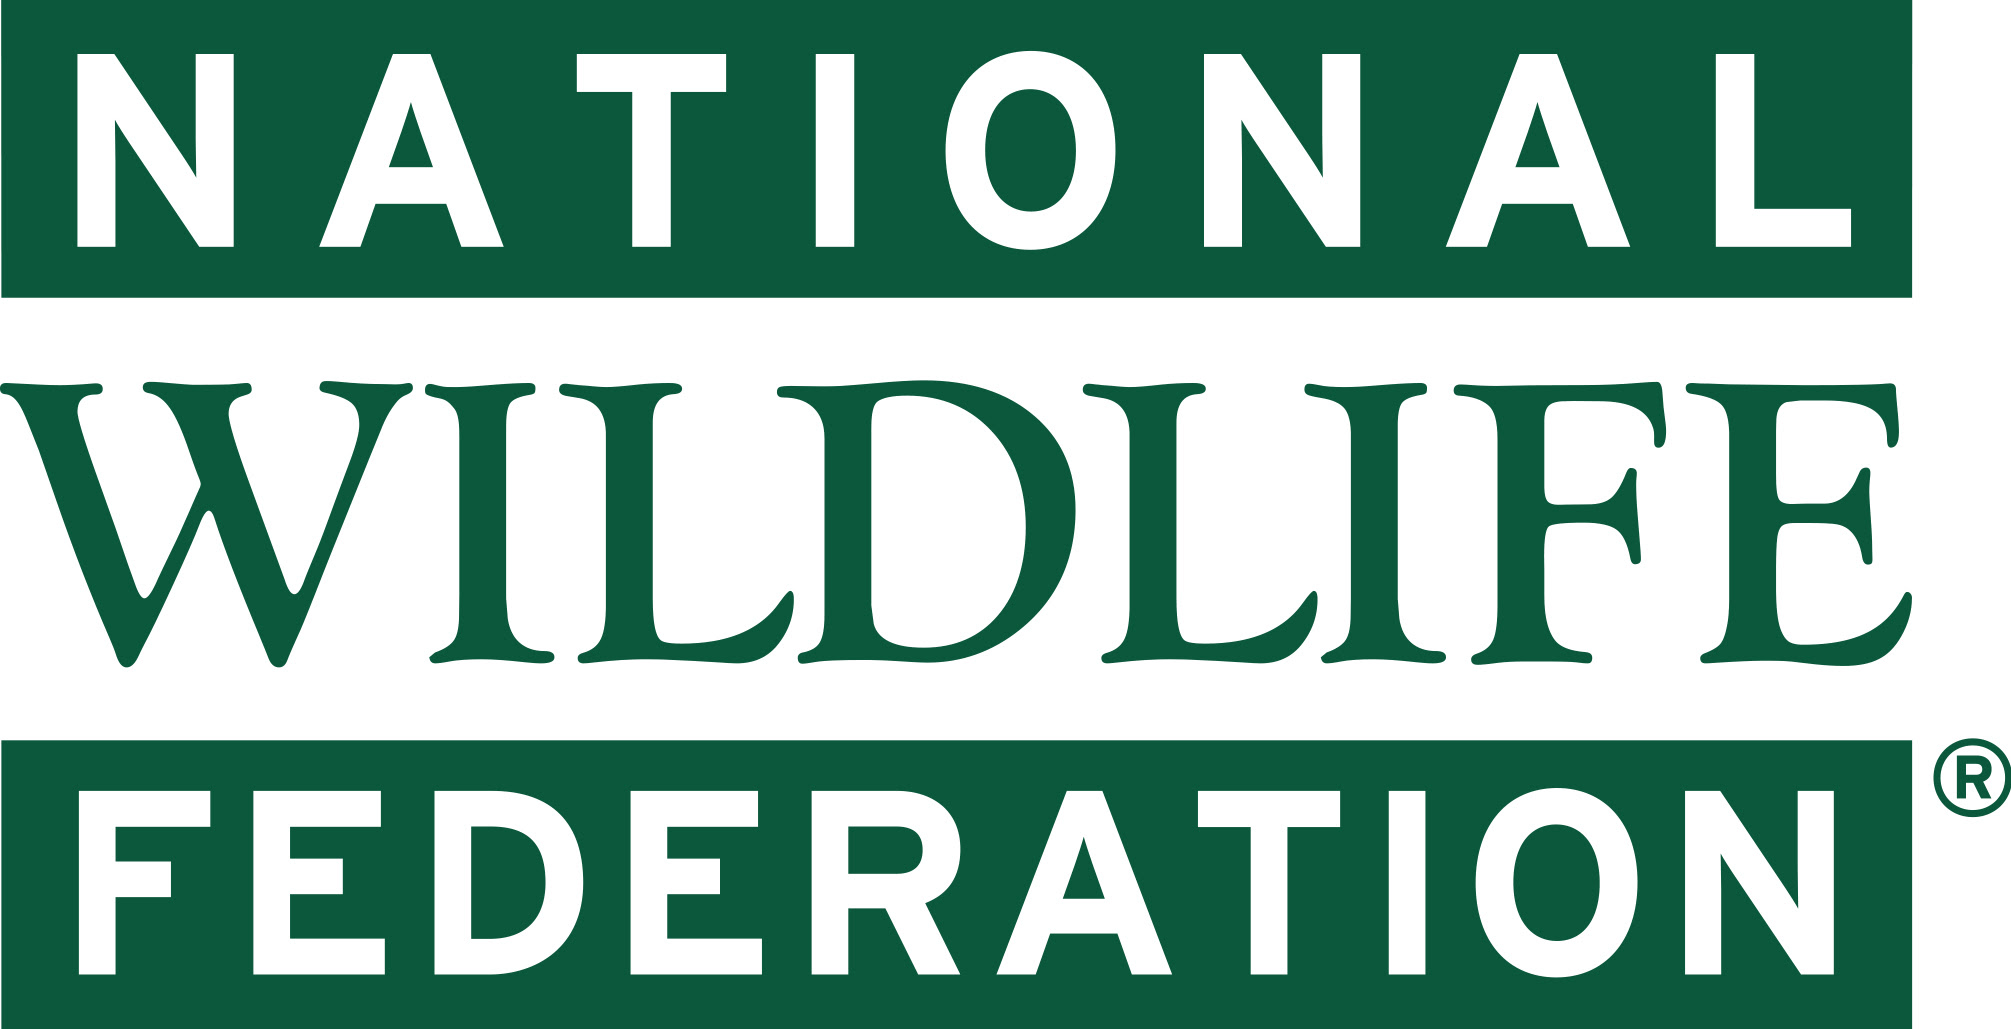 the national wildlife federation Mission we believe america's experience with cherished landscapes and wildlife has helped define and shape our national character and identity for generations.